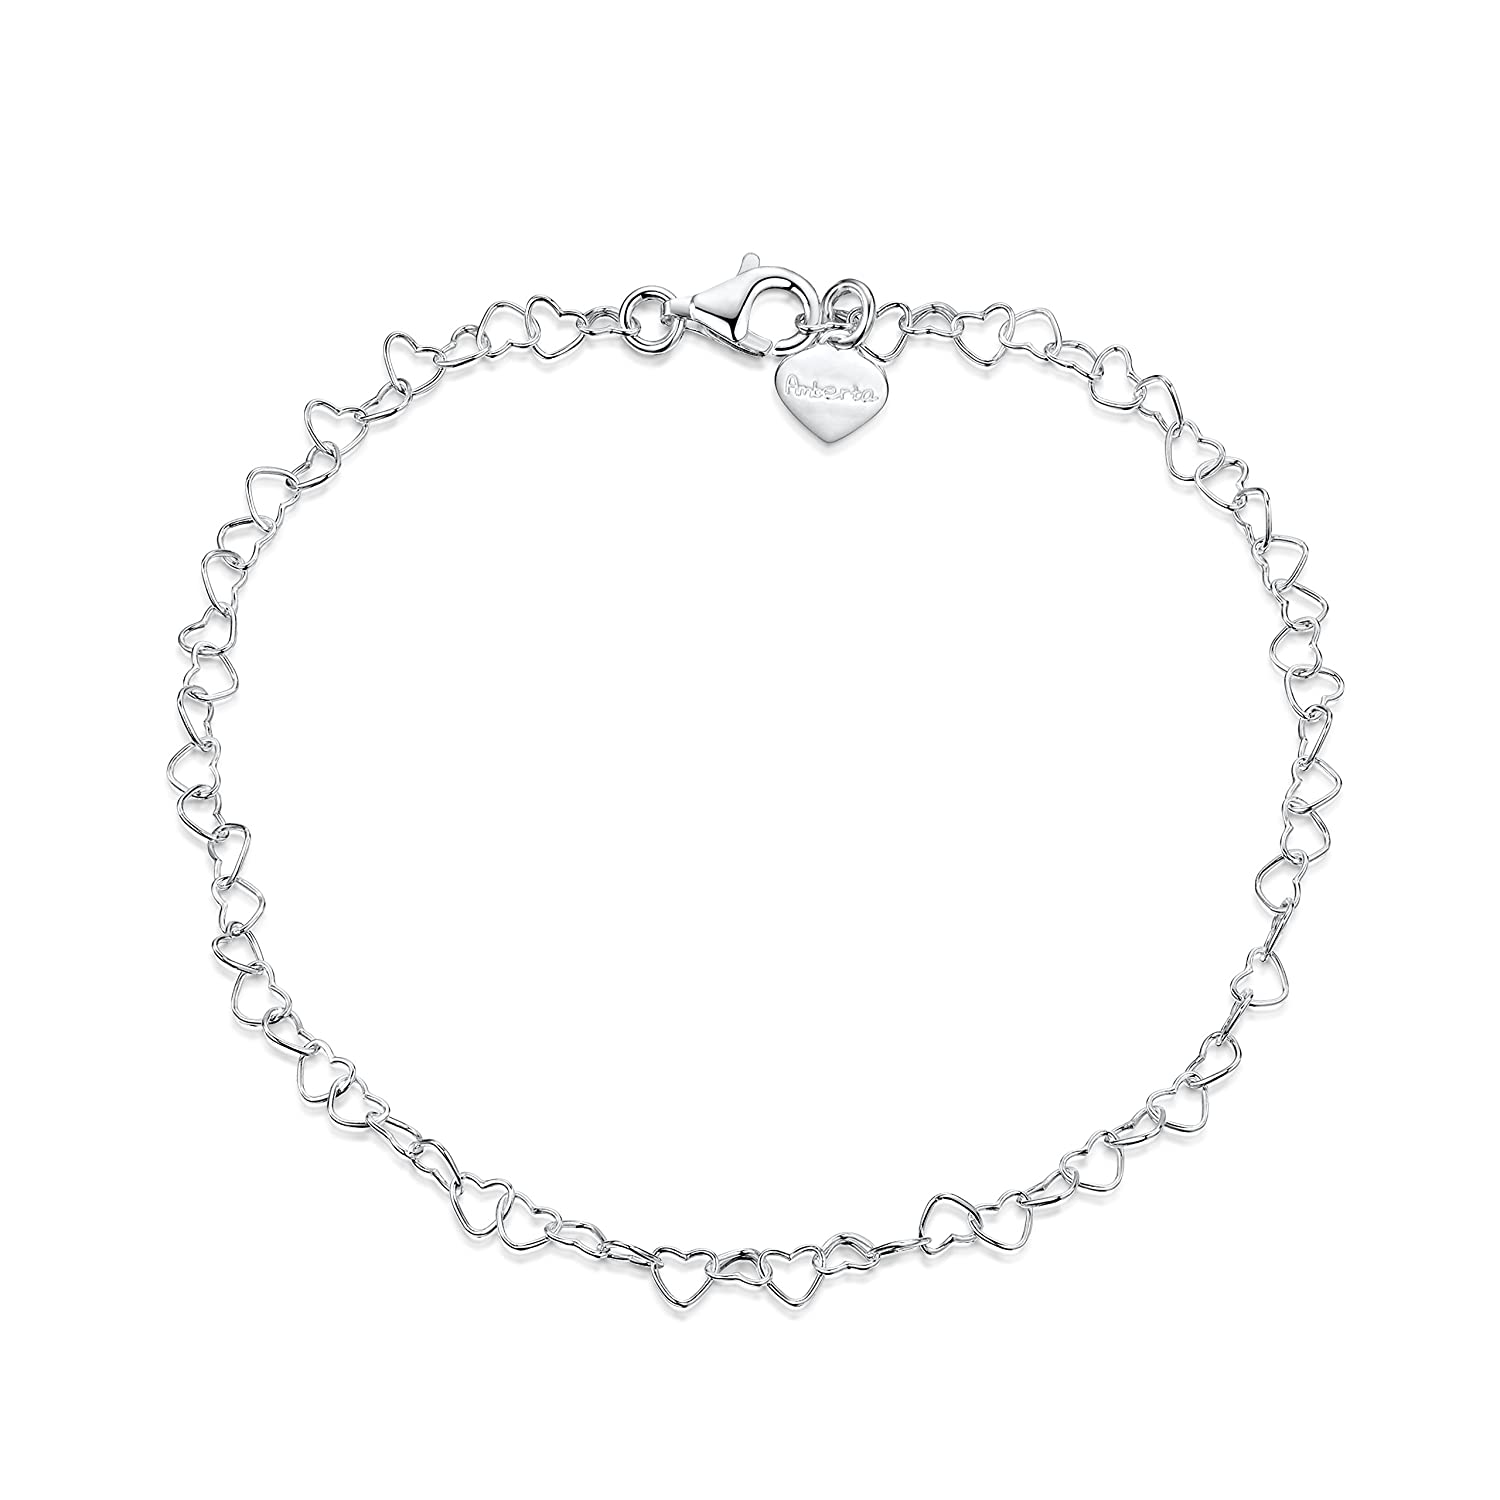 925 Fine Sterling Silver Naturally Adjustable Anklet - 3 mm Heart Chain Ankle Bracelet - up to 10 inch - Flexible Fit Amberta BIA-S925-CHAIN-052-040-250